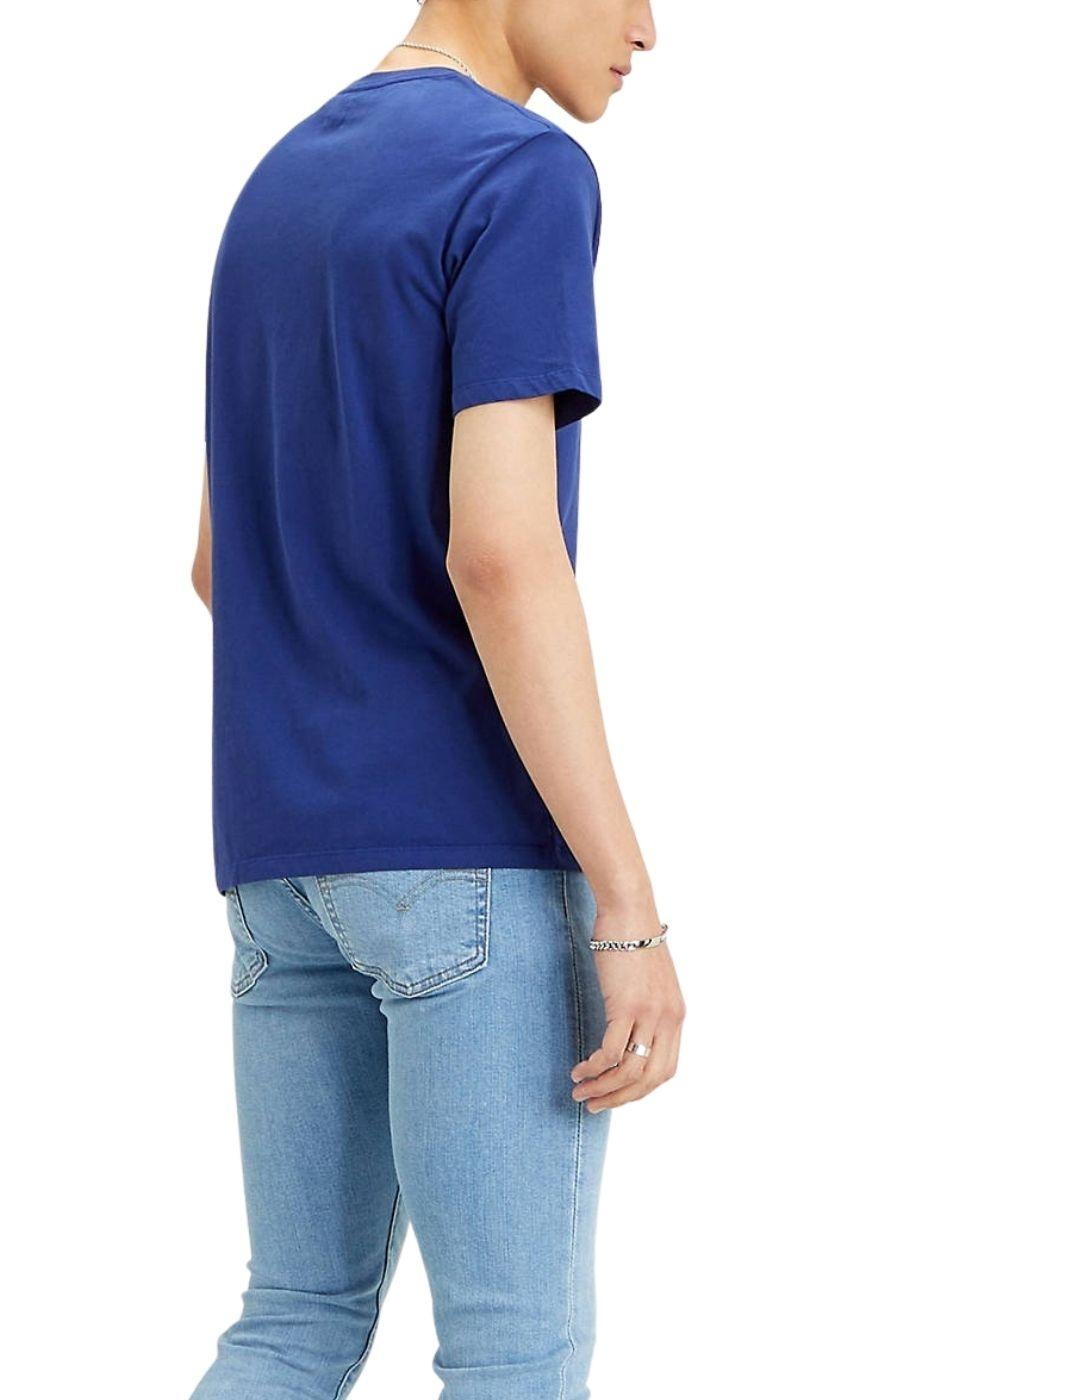 Camiseta Levis Short Sleeve Housemarket Tee Blueprint hombre